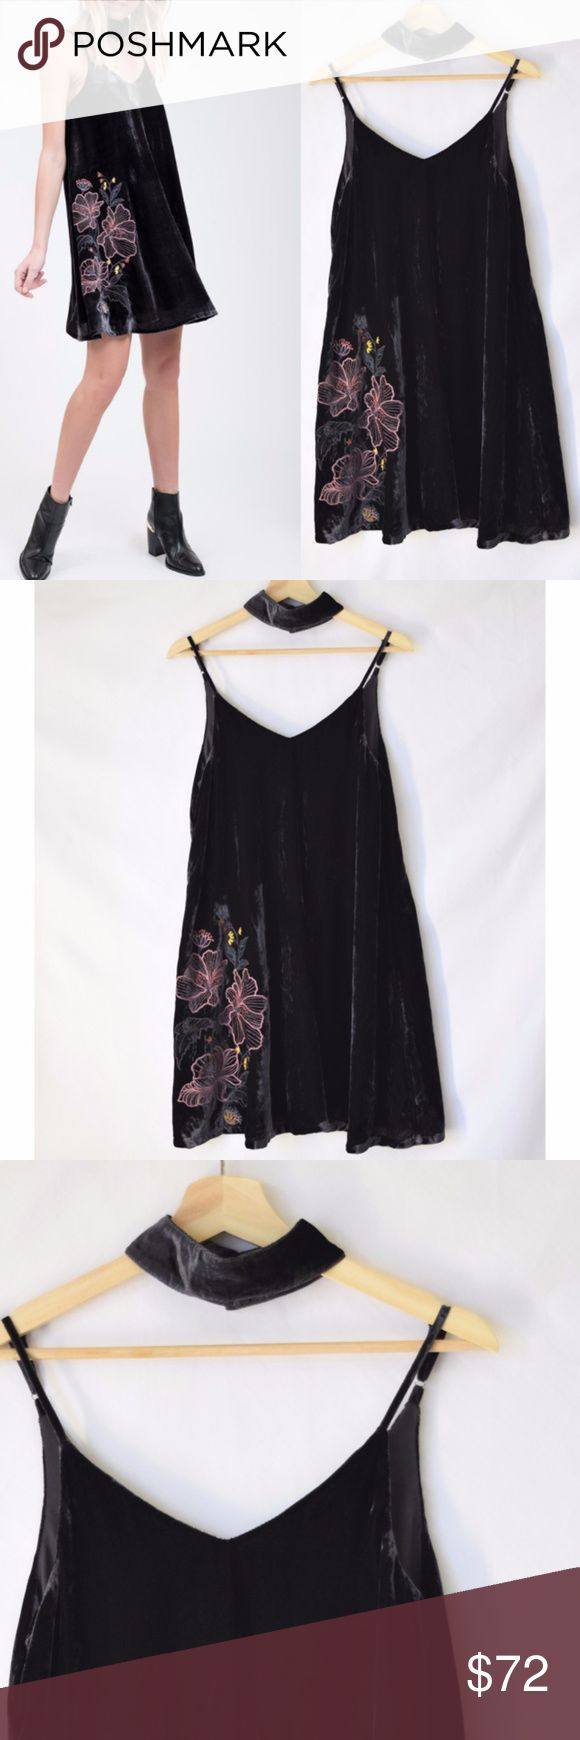 NWOT Anthro JOA Velvet Cami Dress Mini Charcoal New without tag J.O.A  -Embroidered velvet dress -Adjustable cami straps +comes with a velvet choker  Self: 100 % Polyester, Lining: 100 % Polyester Size S Color Charcoal No care label J.O.A Dresses Mini